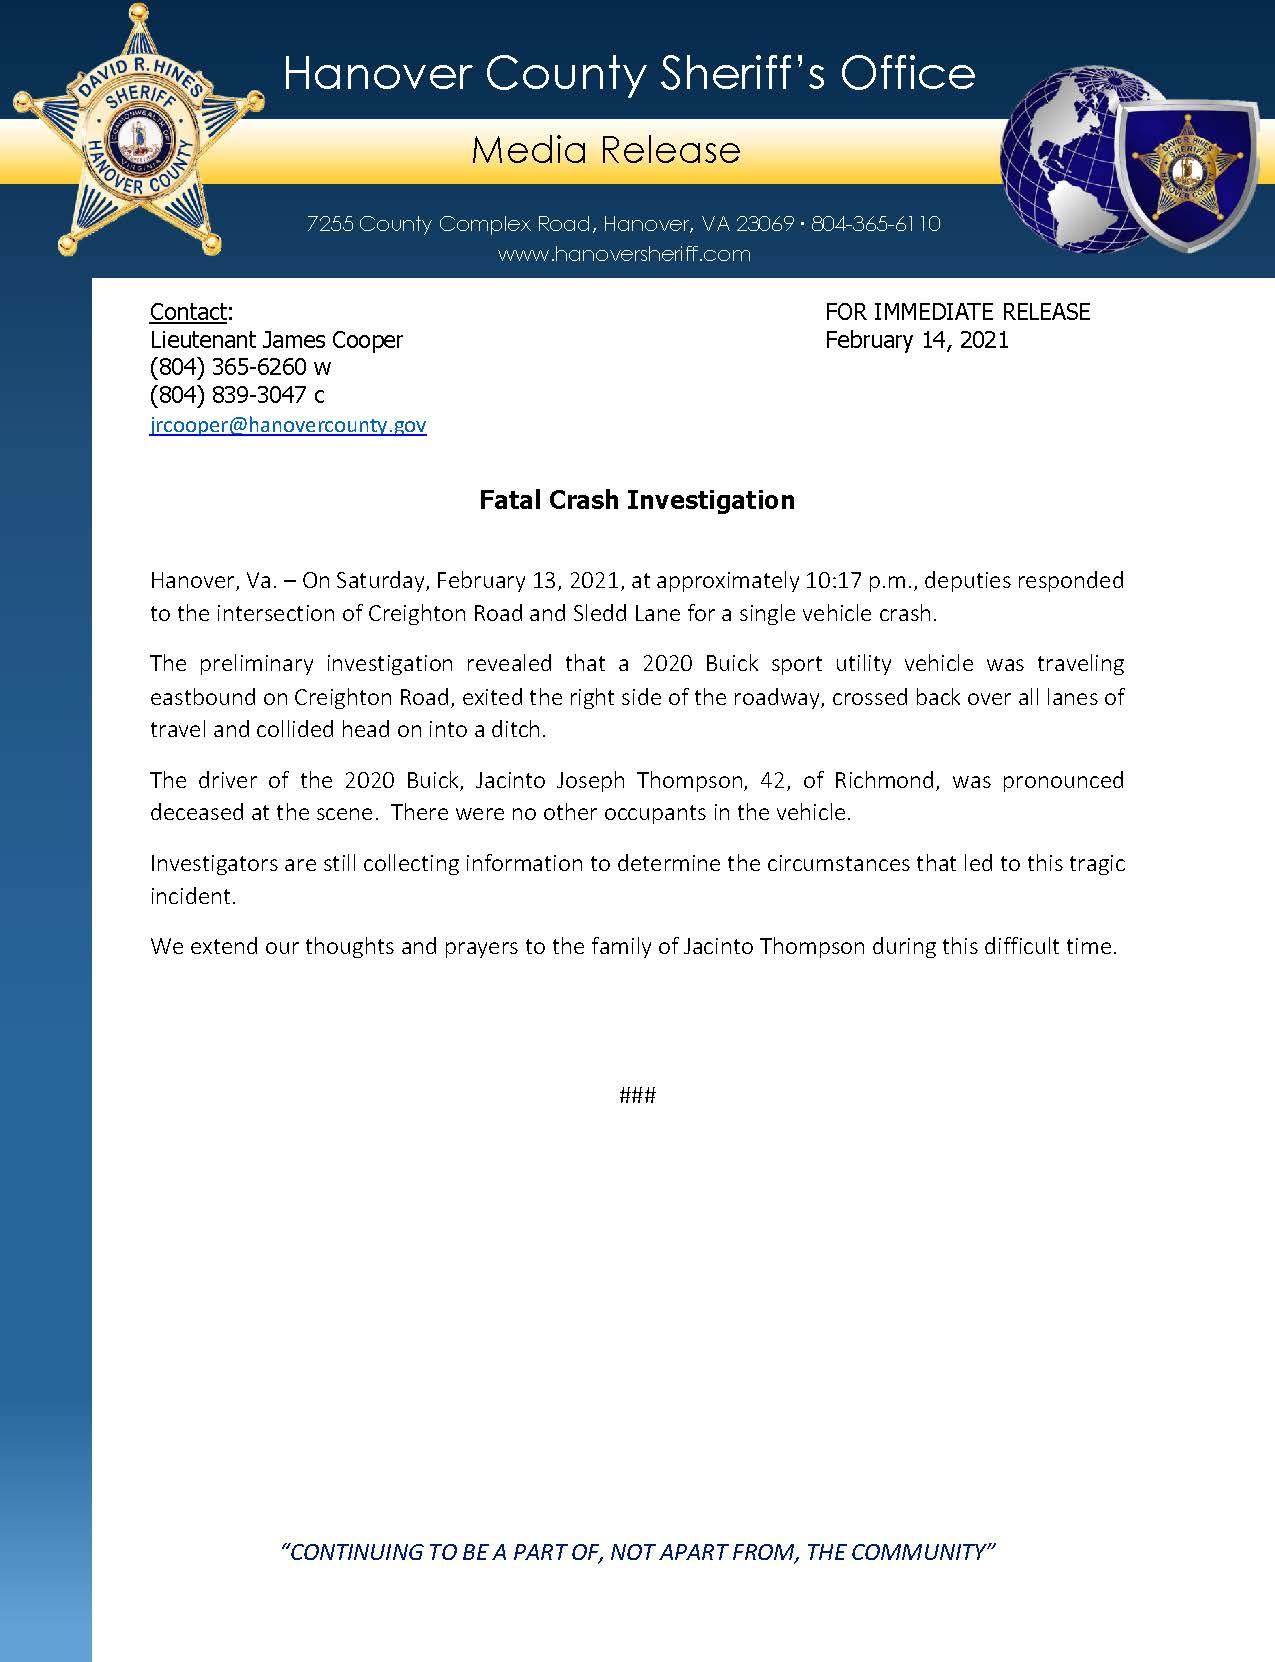 HCSO Media Release - Fatal Crash Investigation 2.14.21